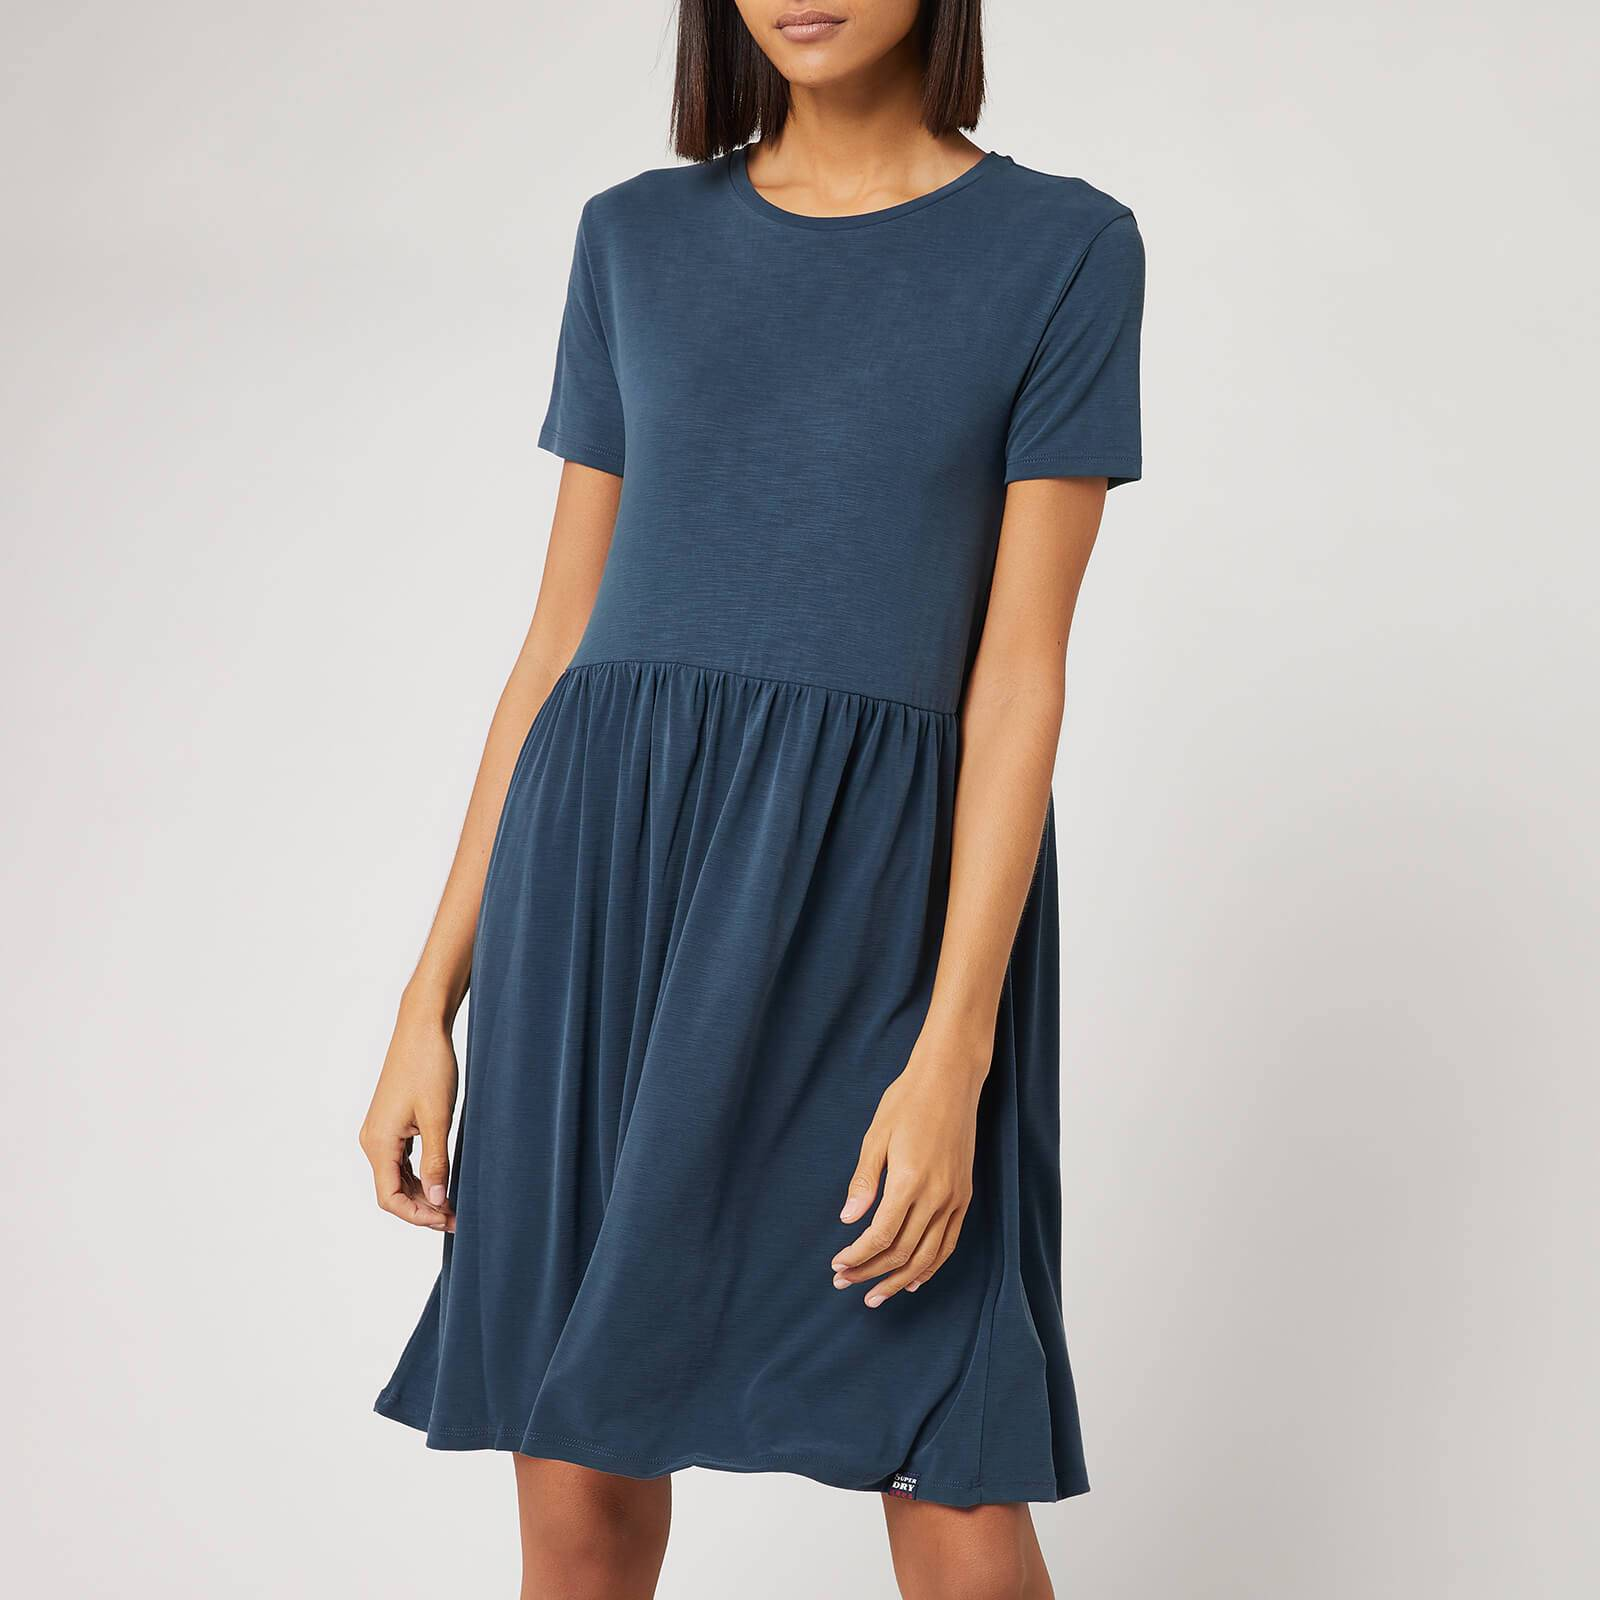 Superdry Women's Smocked T-Shirt Dress - Beechwater Blue - UK 10